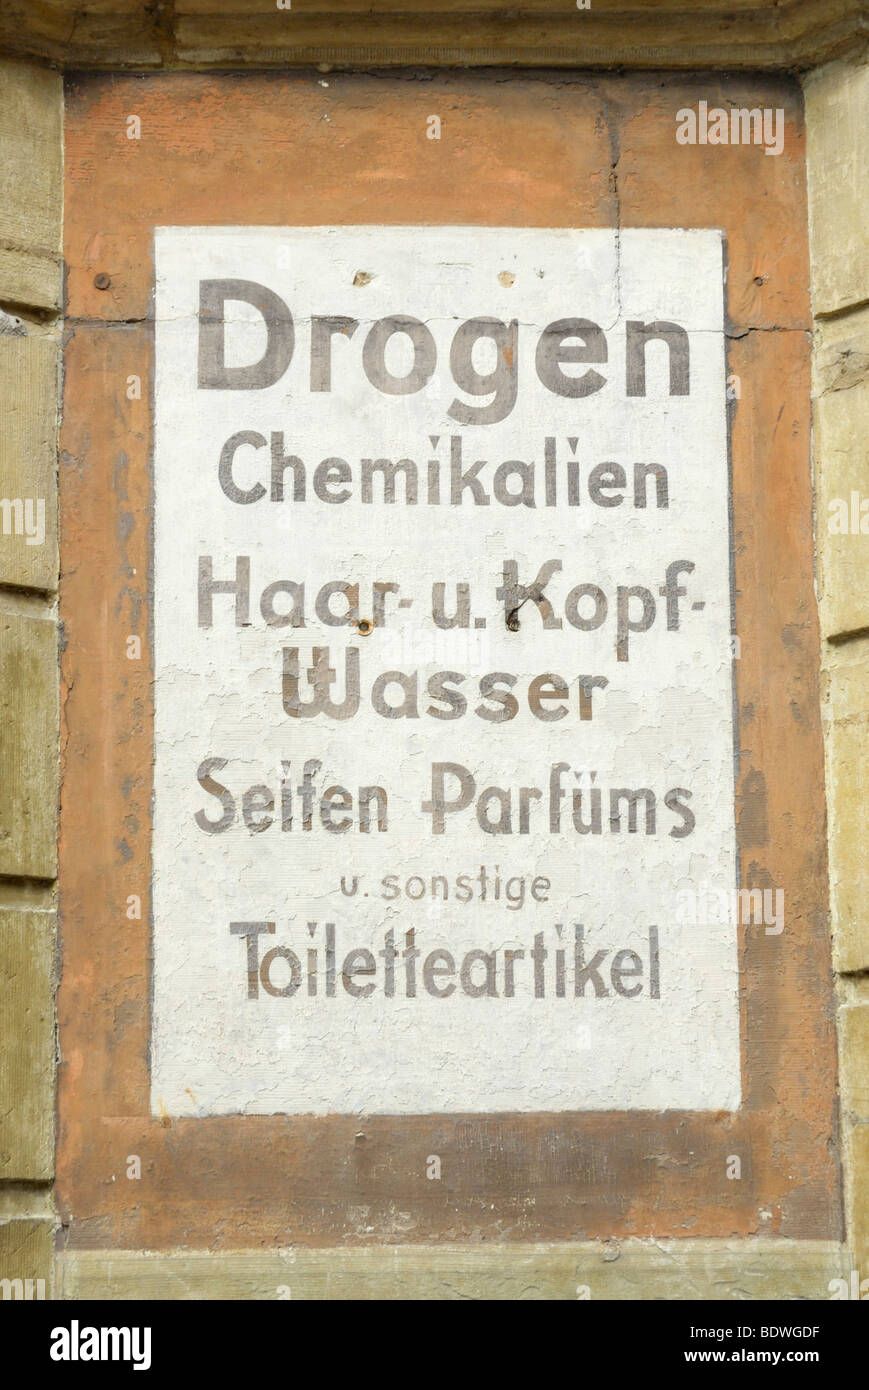 Old sign of a pharmacy for toiletries, chemicals and drugs, Besigheim, Baden-Wuerttemberg, Germany, Europe - Stock Image